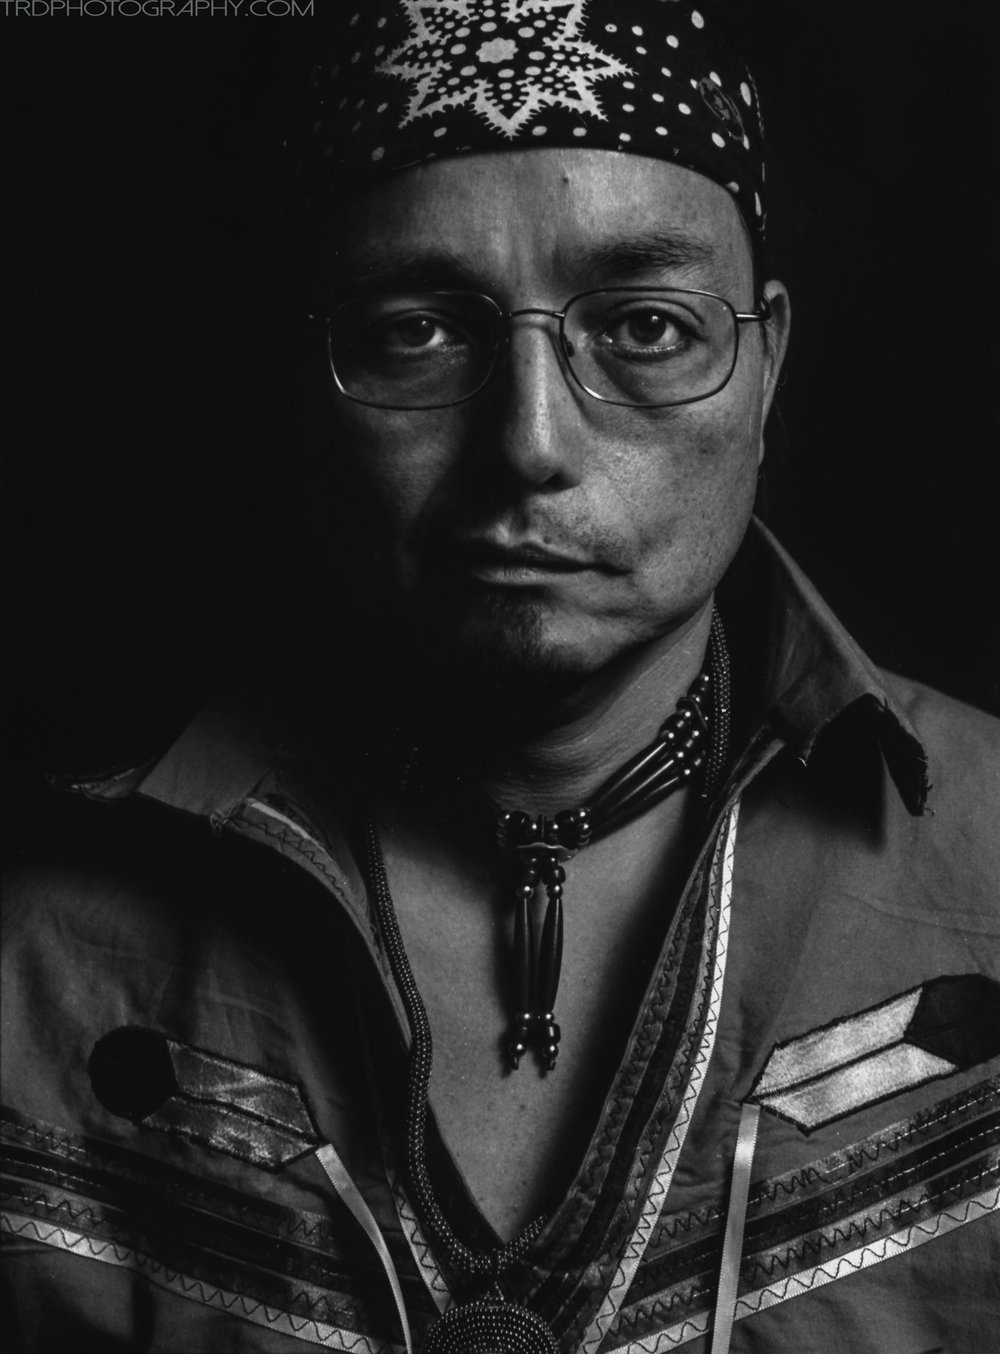 Jeff Johnson - Native American Portrait Series - TRD Photography